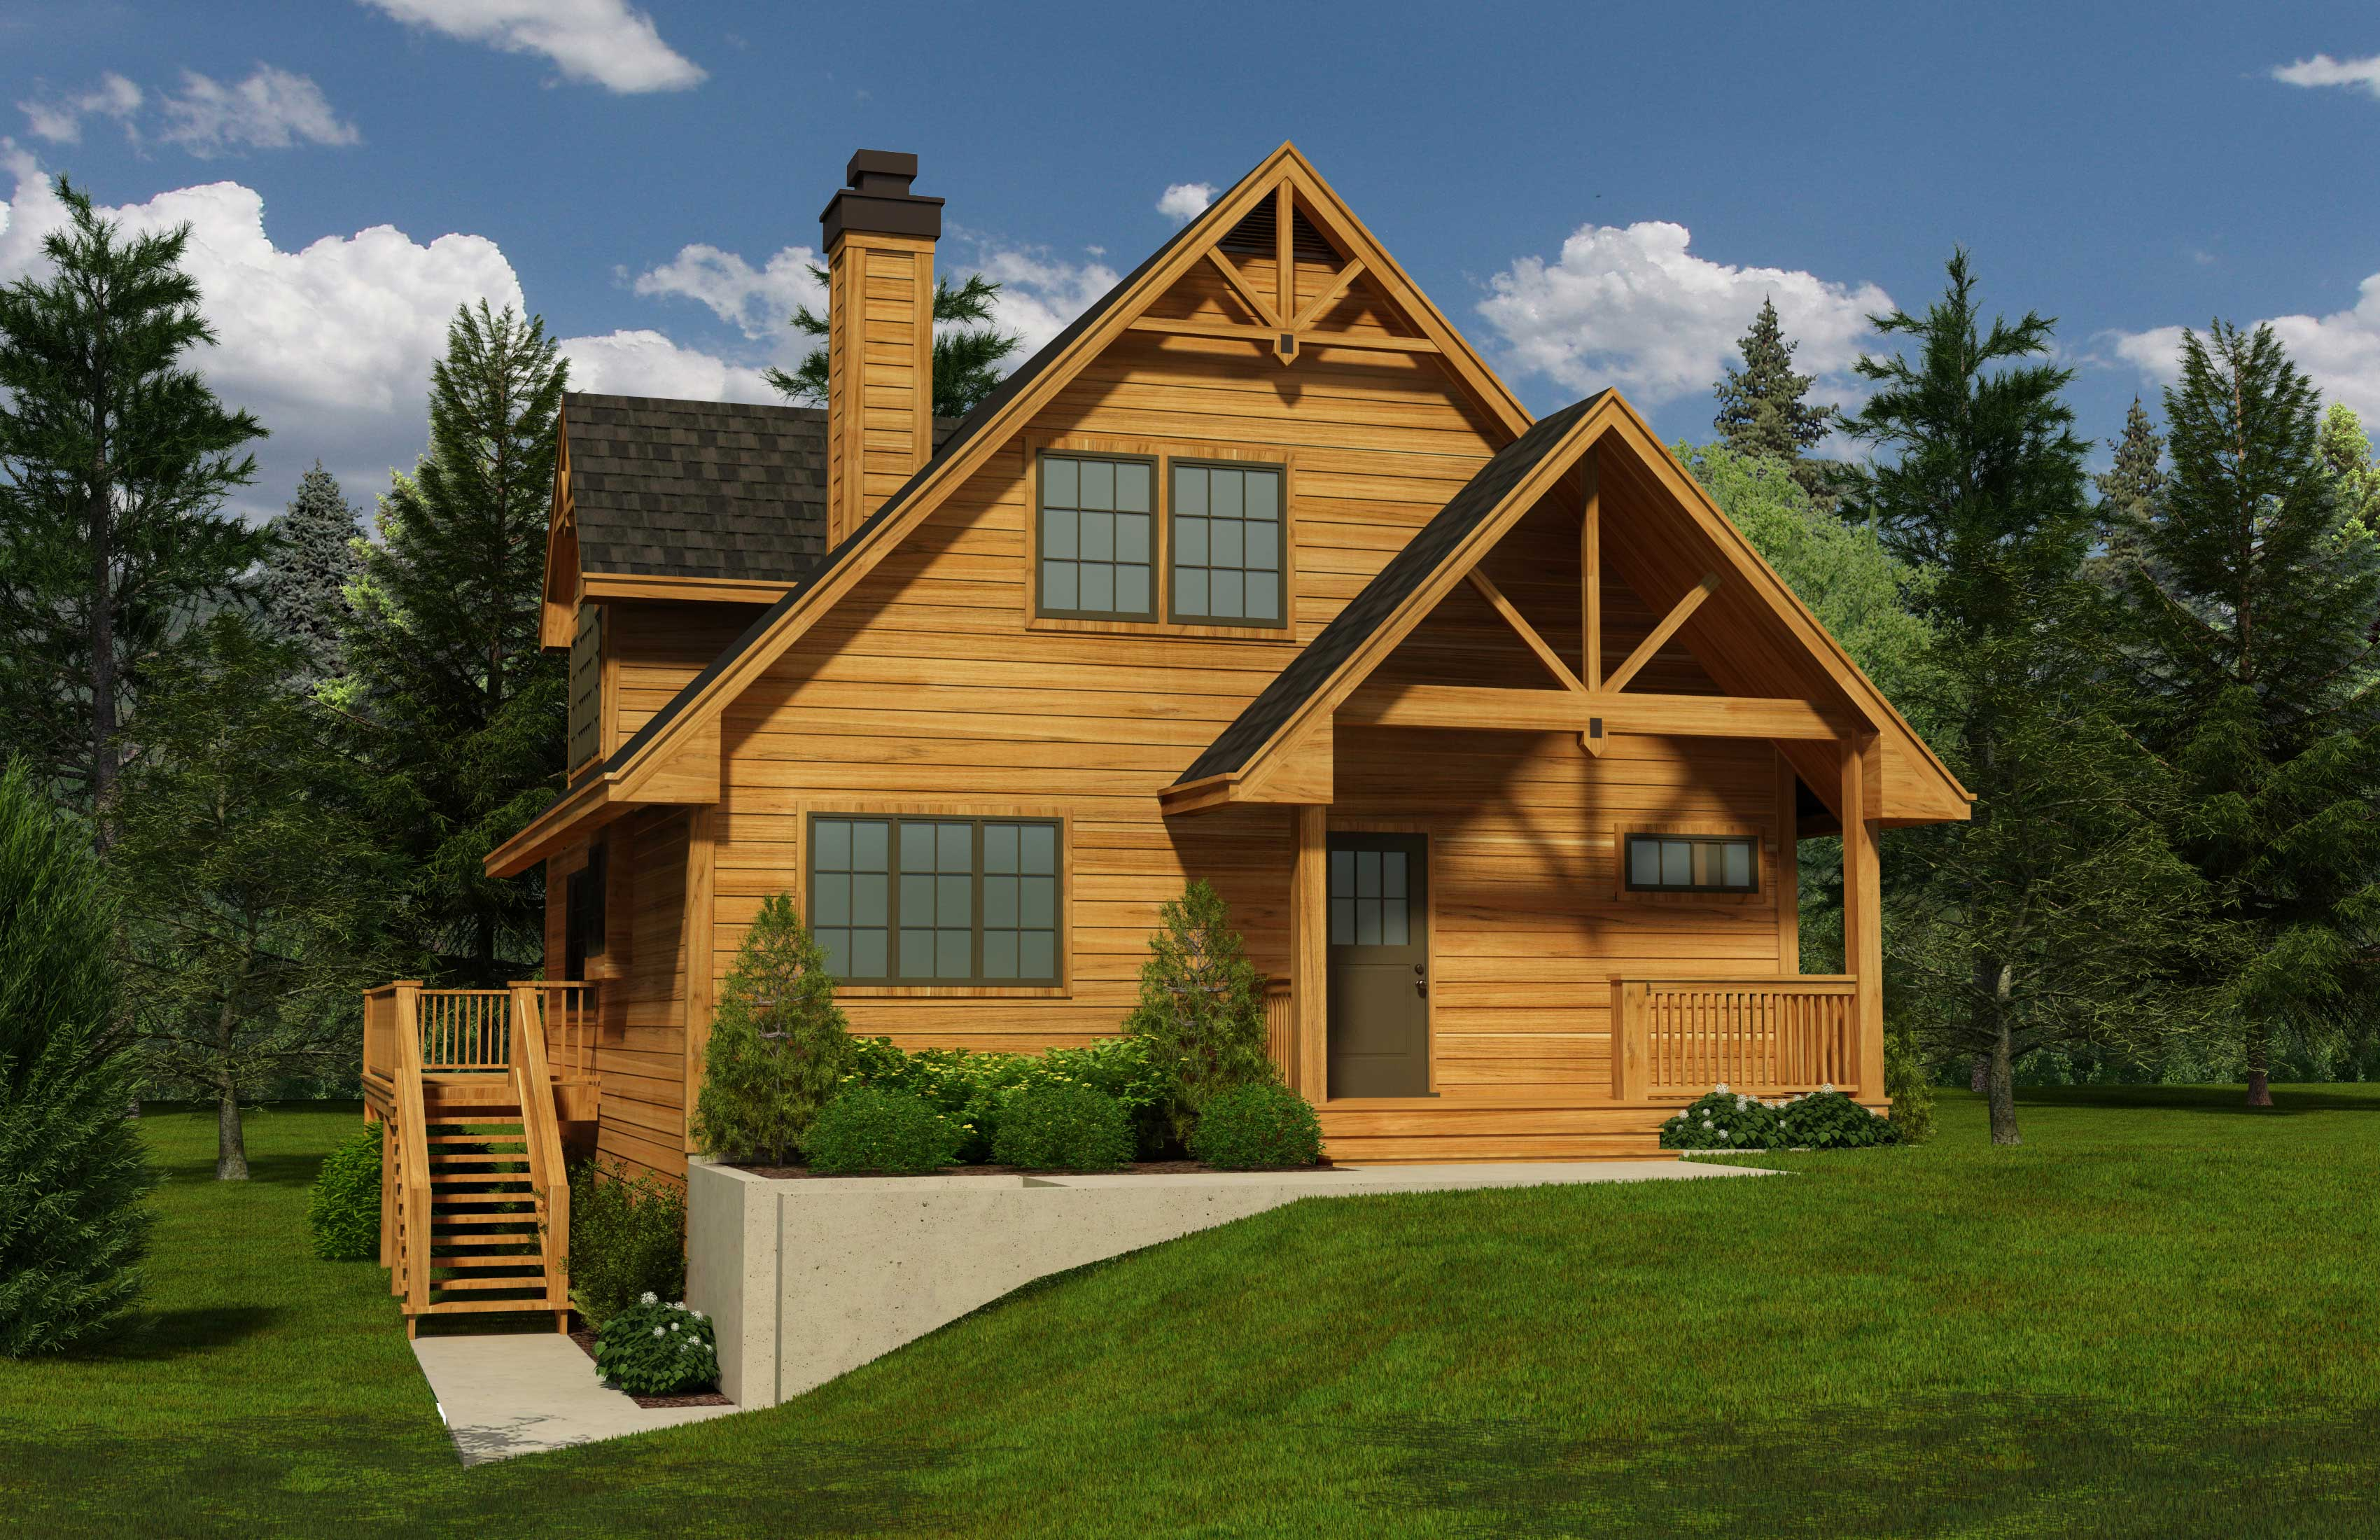 chalet building plans 3 bedrm 1741 sq ft craftsman house plan 160 1018 7209